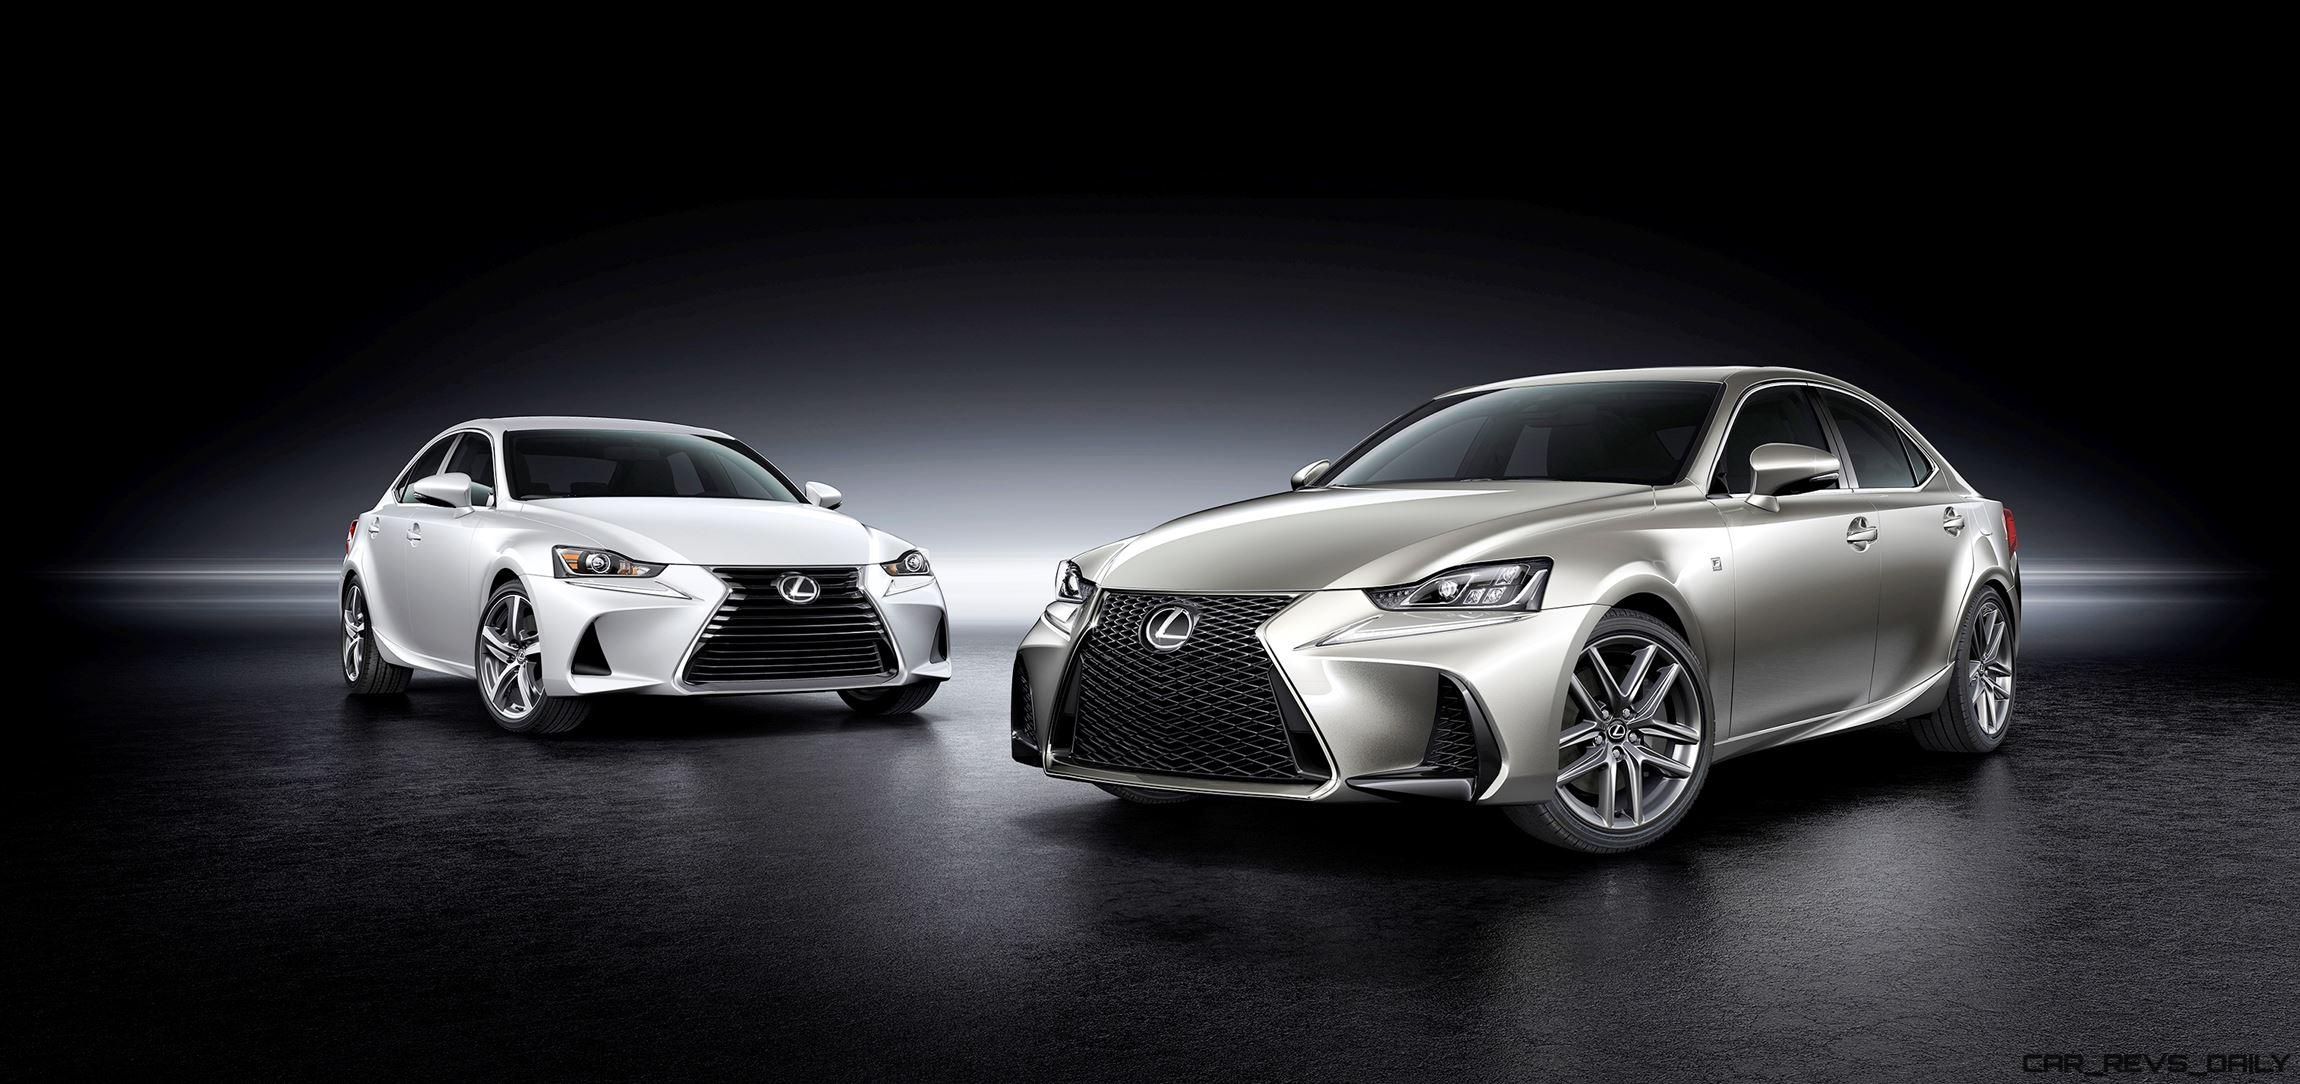 2017 Lexus IS Preview  New Noses Wilder FSport Upgrades and